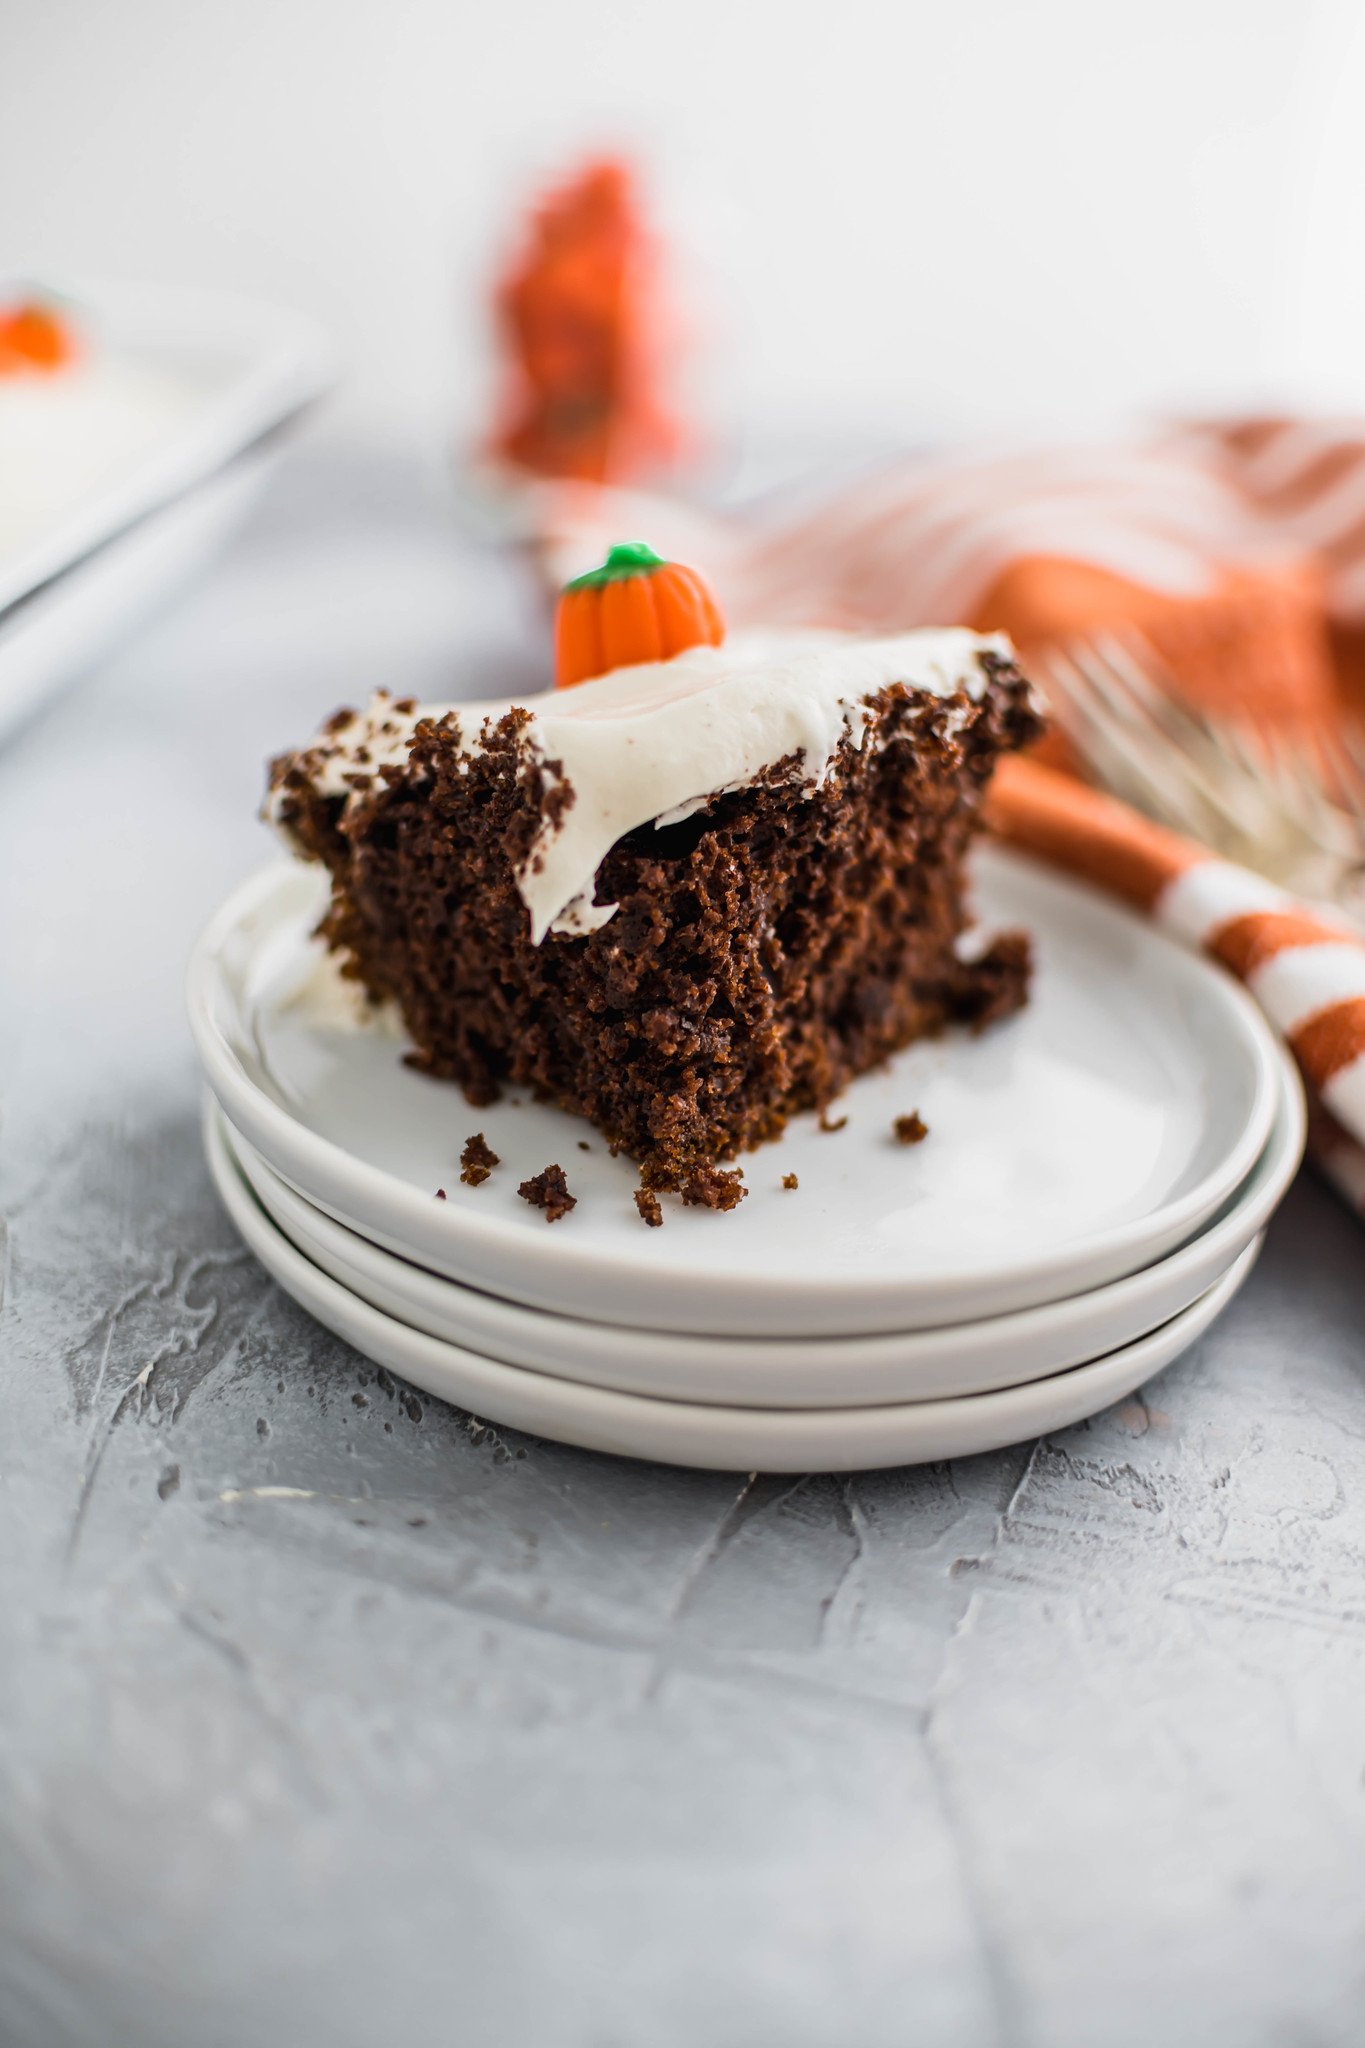 Picture of chocolate pumpkin cake showing cake texutre. Cake slice sits on small white round plate with forks and cloth napkin in the background.